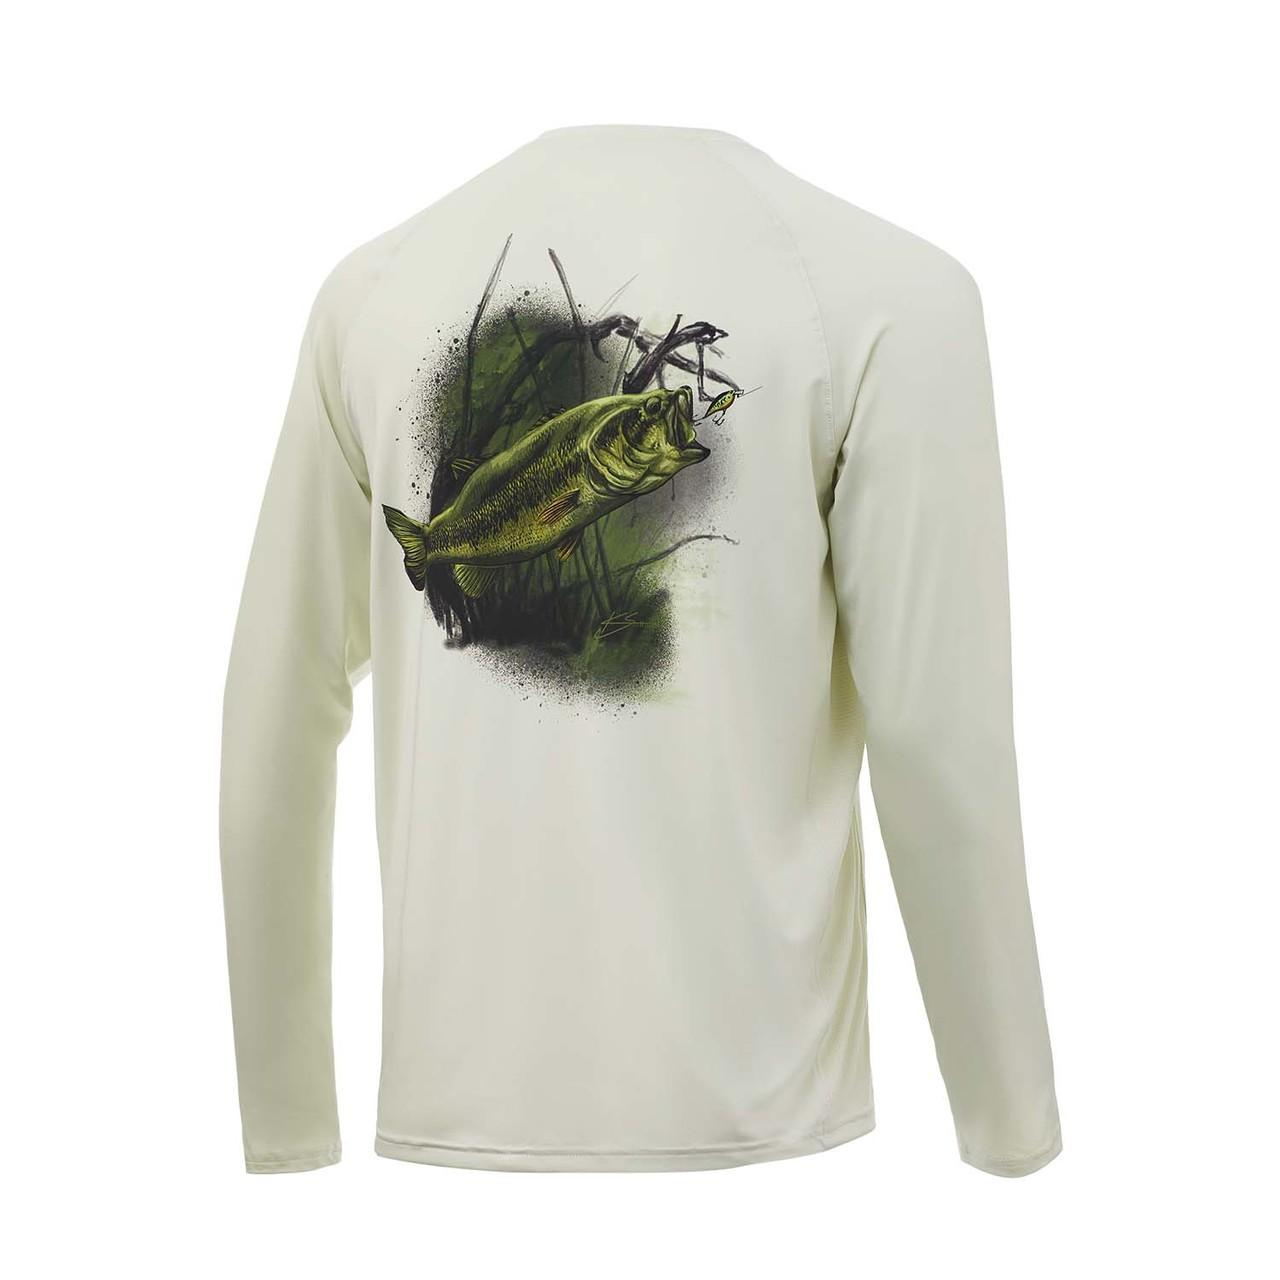 Huk Large Mouth Bass Pursuit Youth Shirt - Fog Green